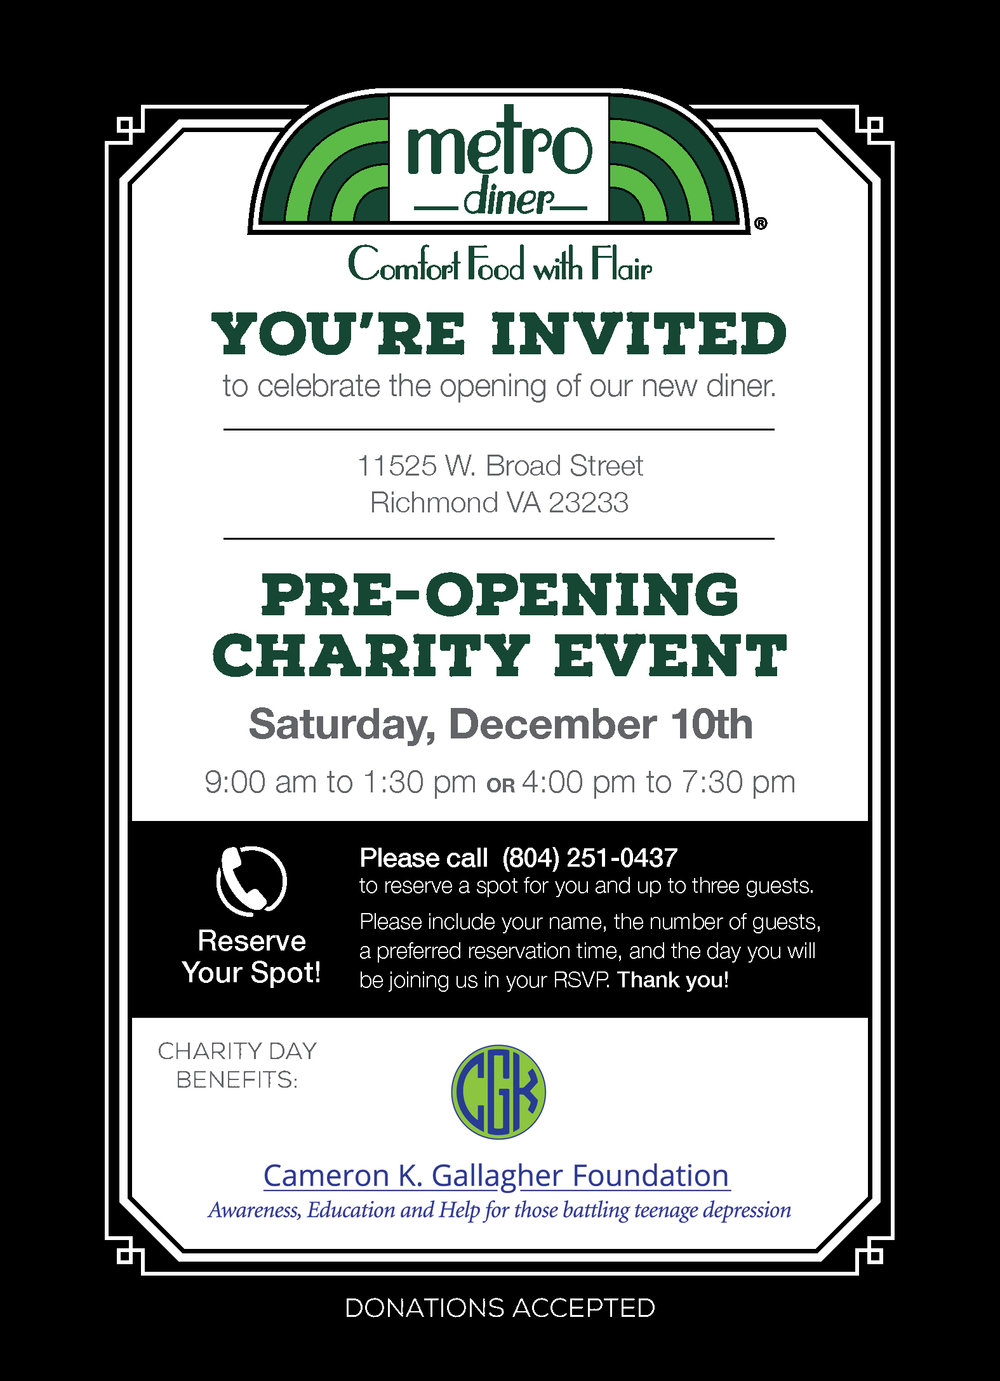 Metro Diner Charity Pre-Opening Event — CKG Foundation